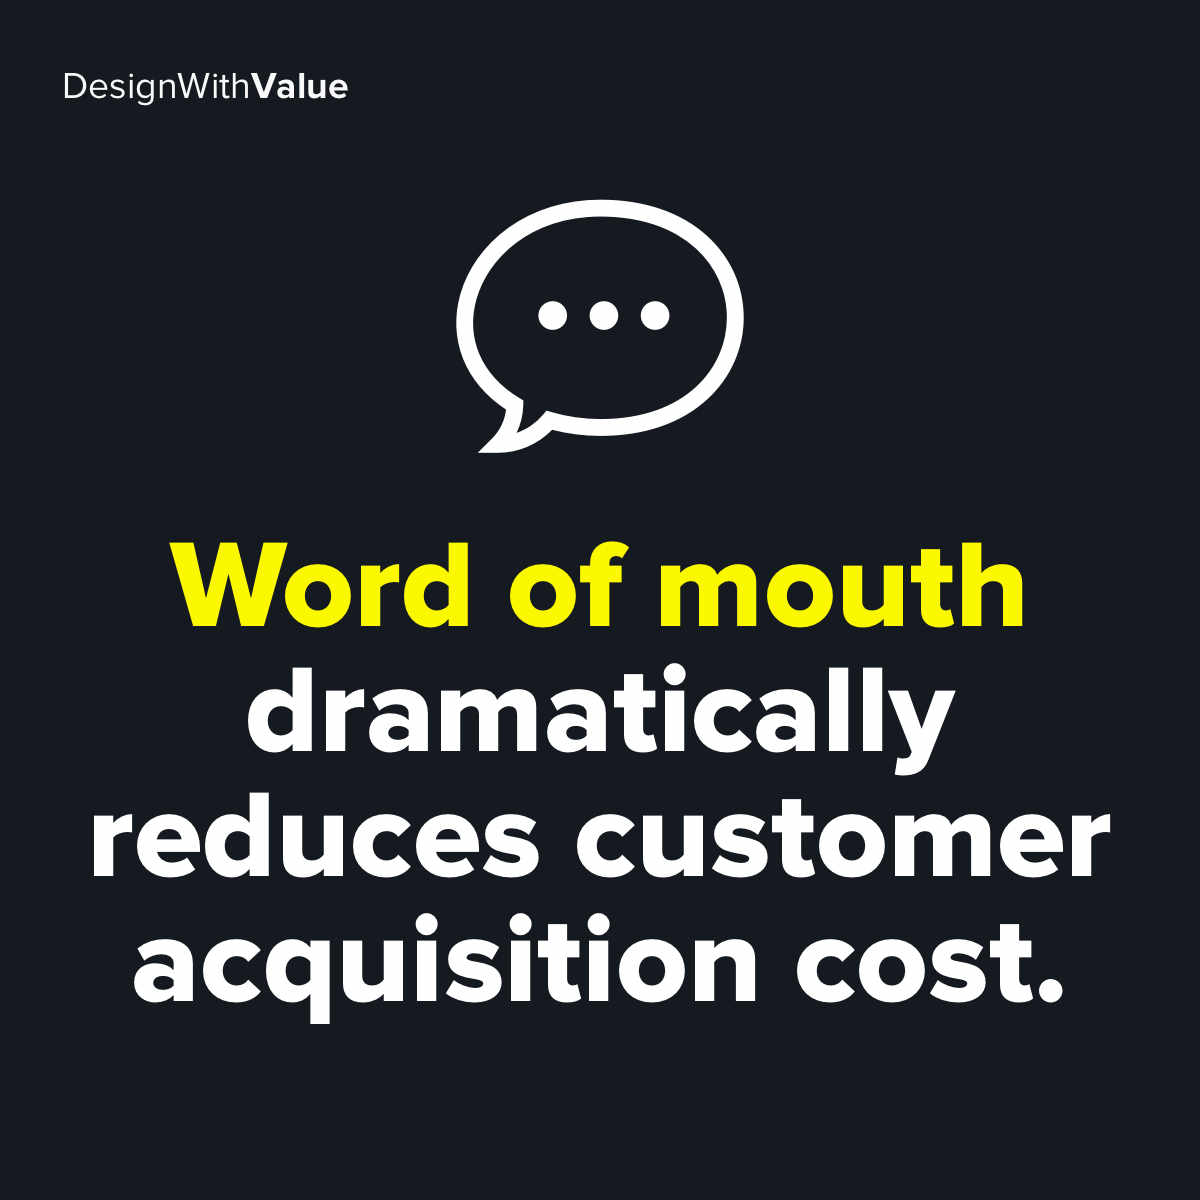 Word of mouth dramatically reduces customer acquisition cost.